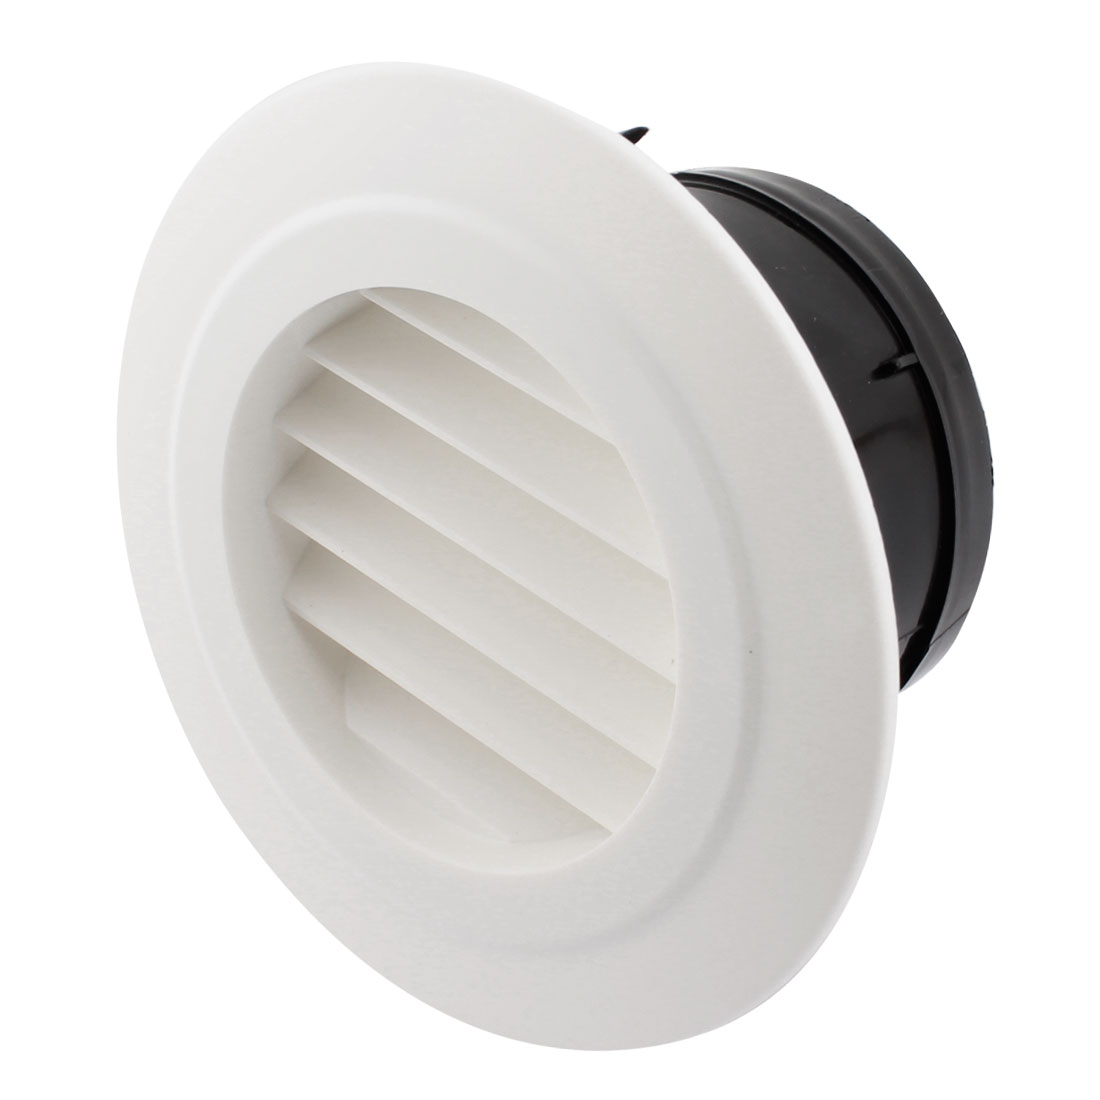 100mm Mounting Dia Circle Air Vent Outlet Louver Ventilation Grill Cover Flange w Filter